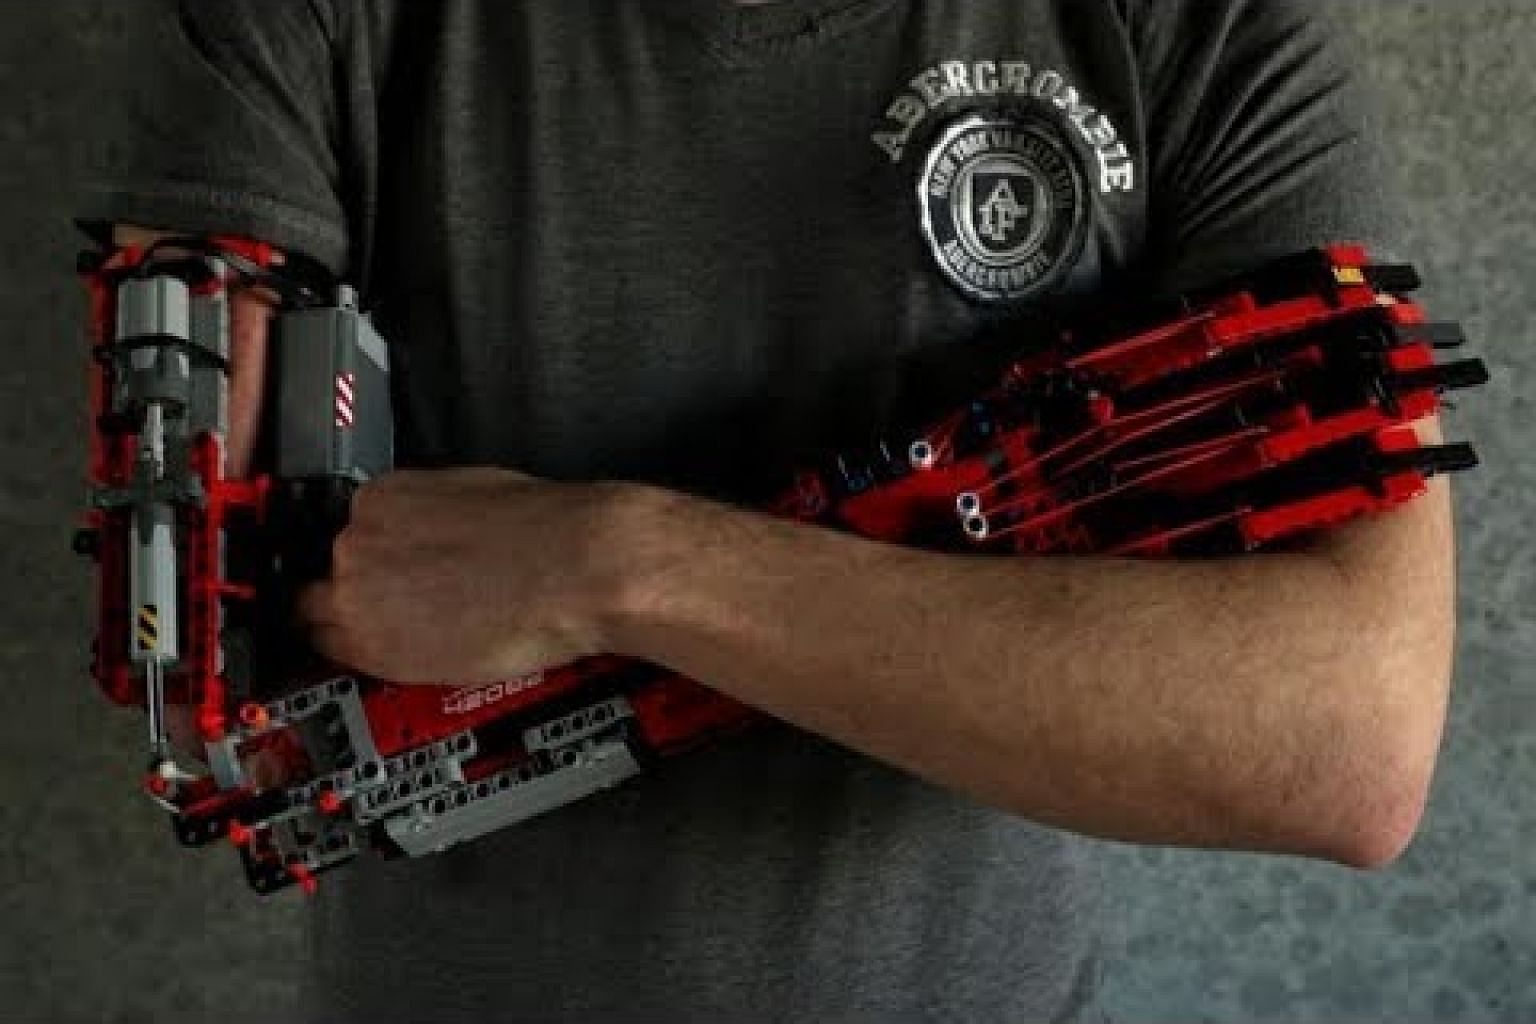 Teen builds his own prosthetic using Lego bricks